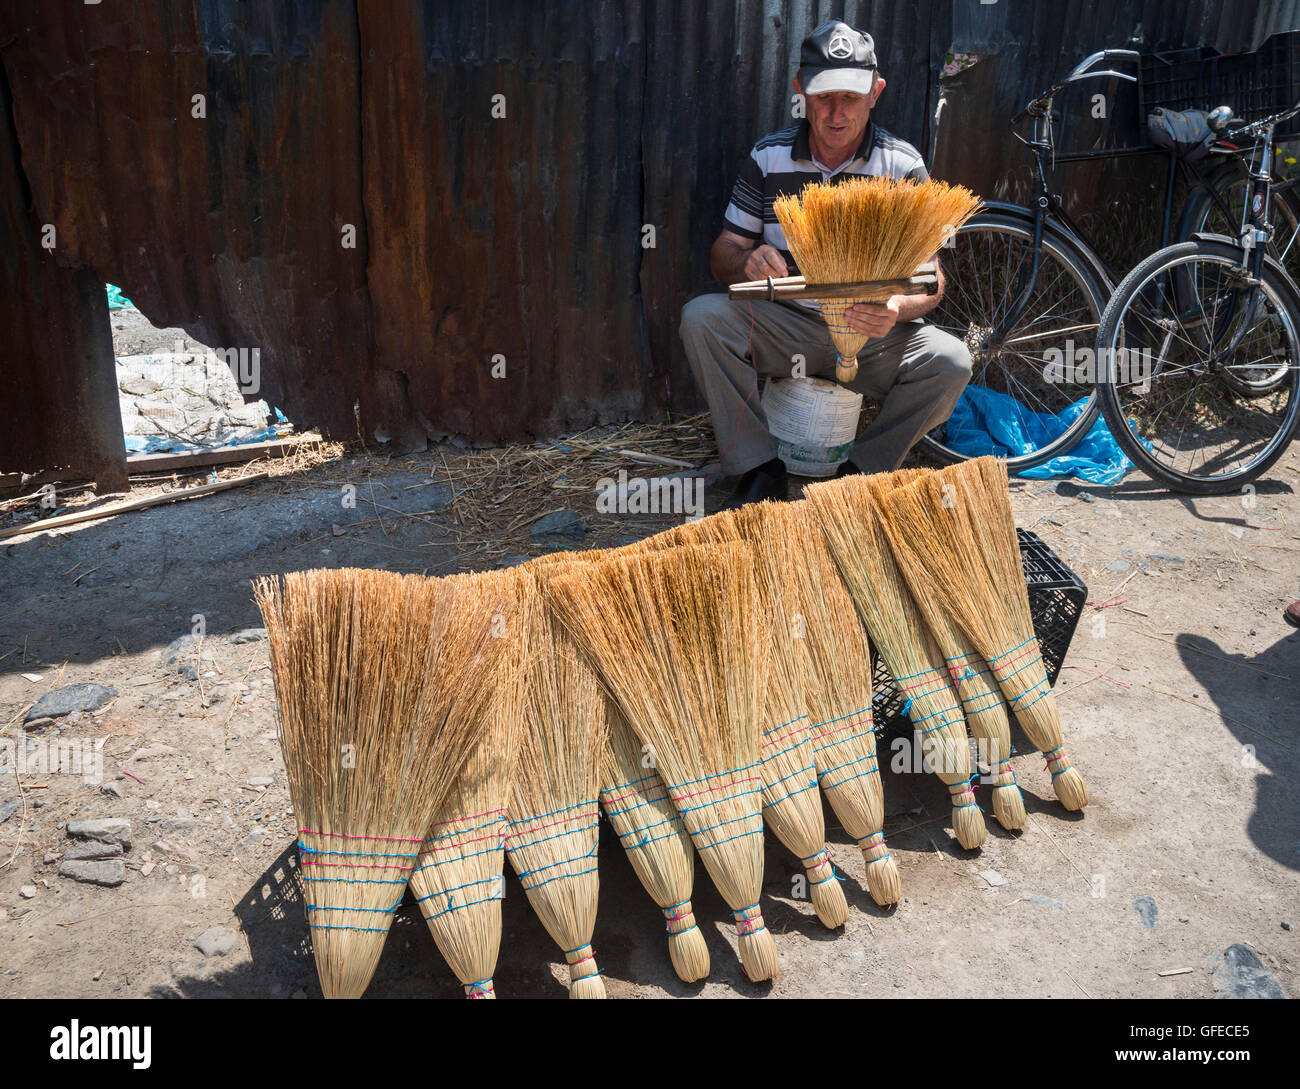 Making and selling brushes at the market in the bazaar district. Korca, South eastern Albania. - Stock Image